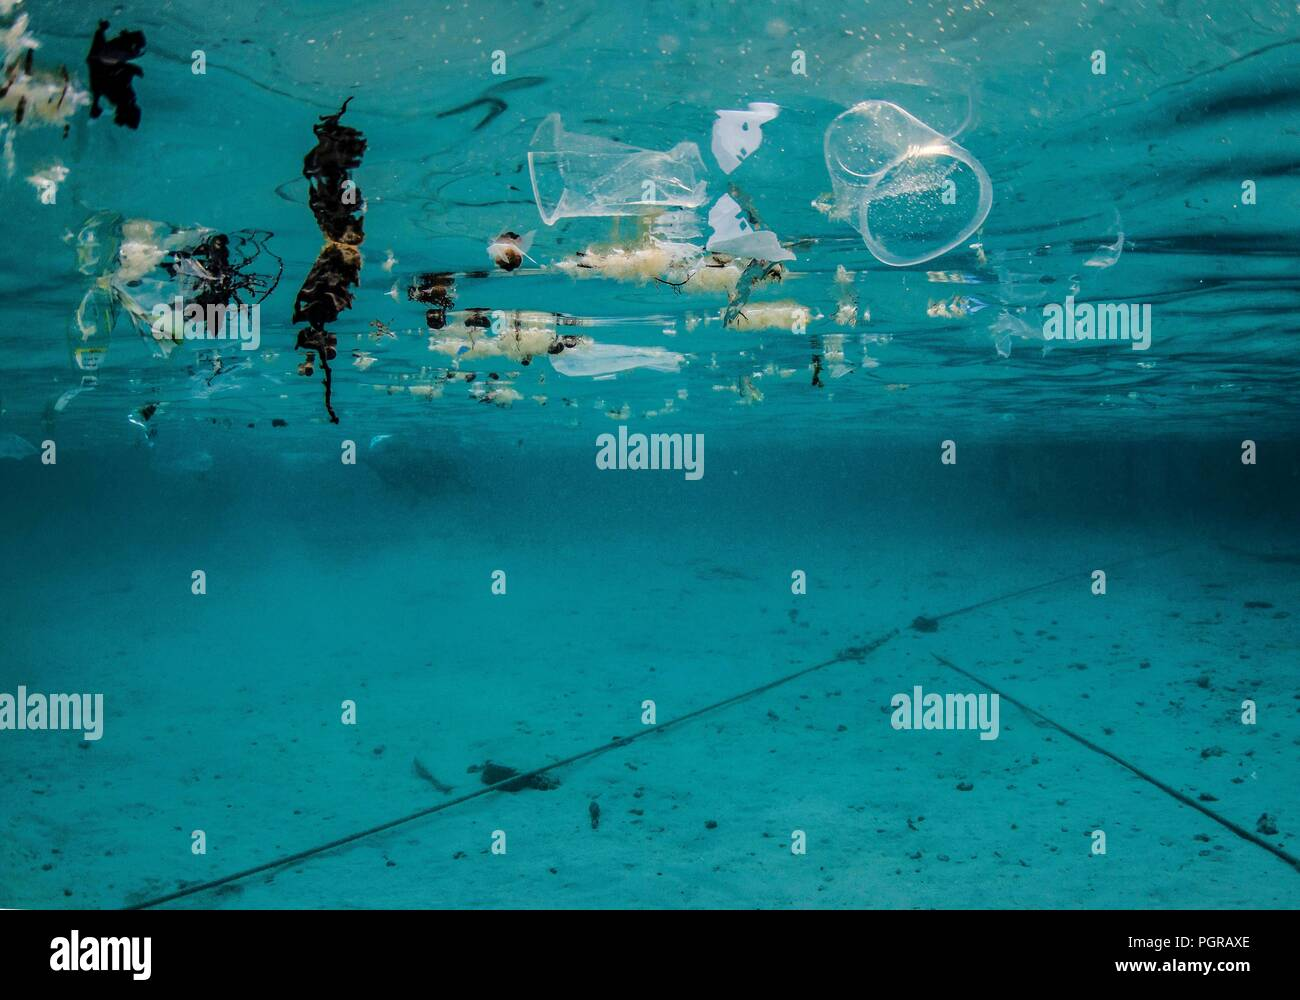 Underwater plastic pollution floating on the surface of the ocean in Egypt - Stock Image